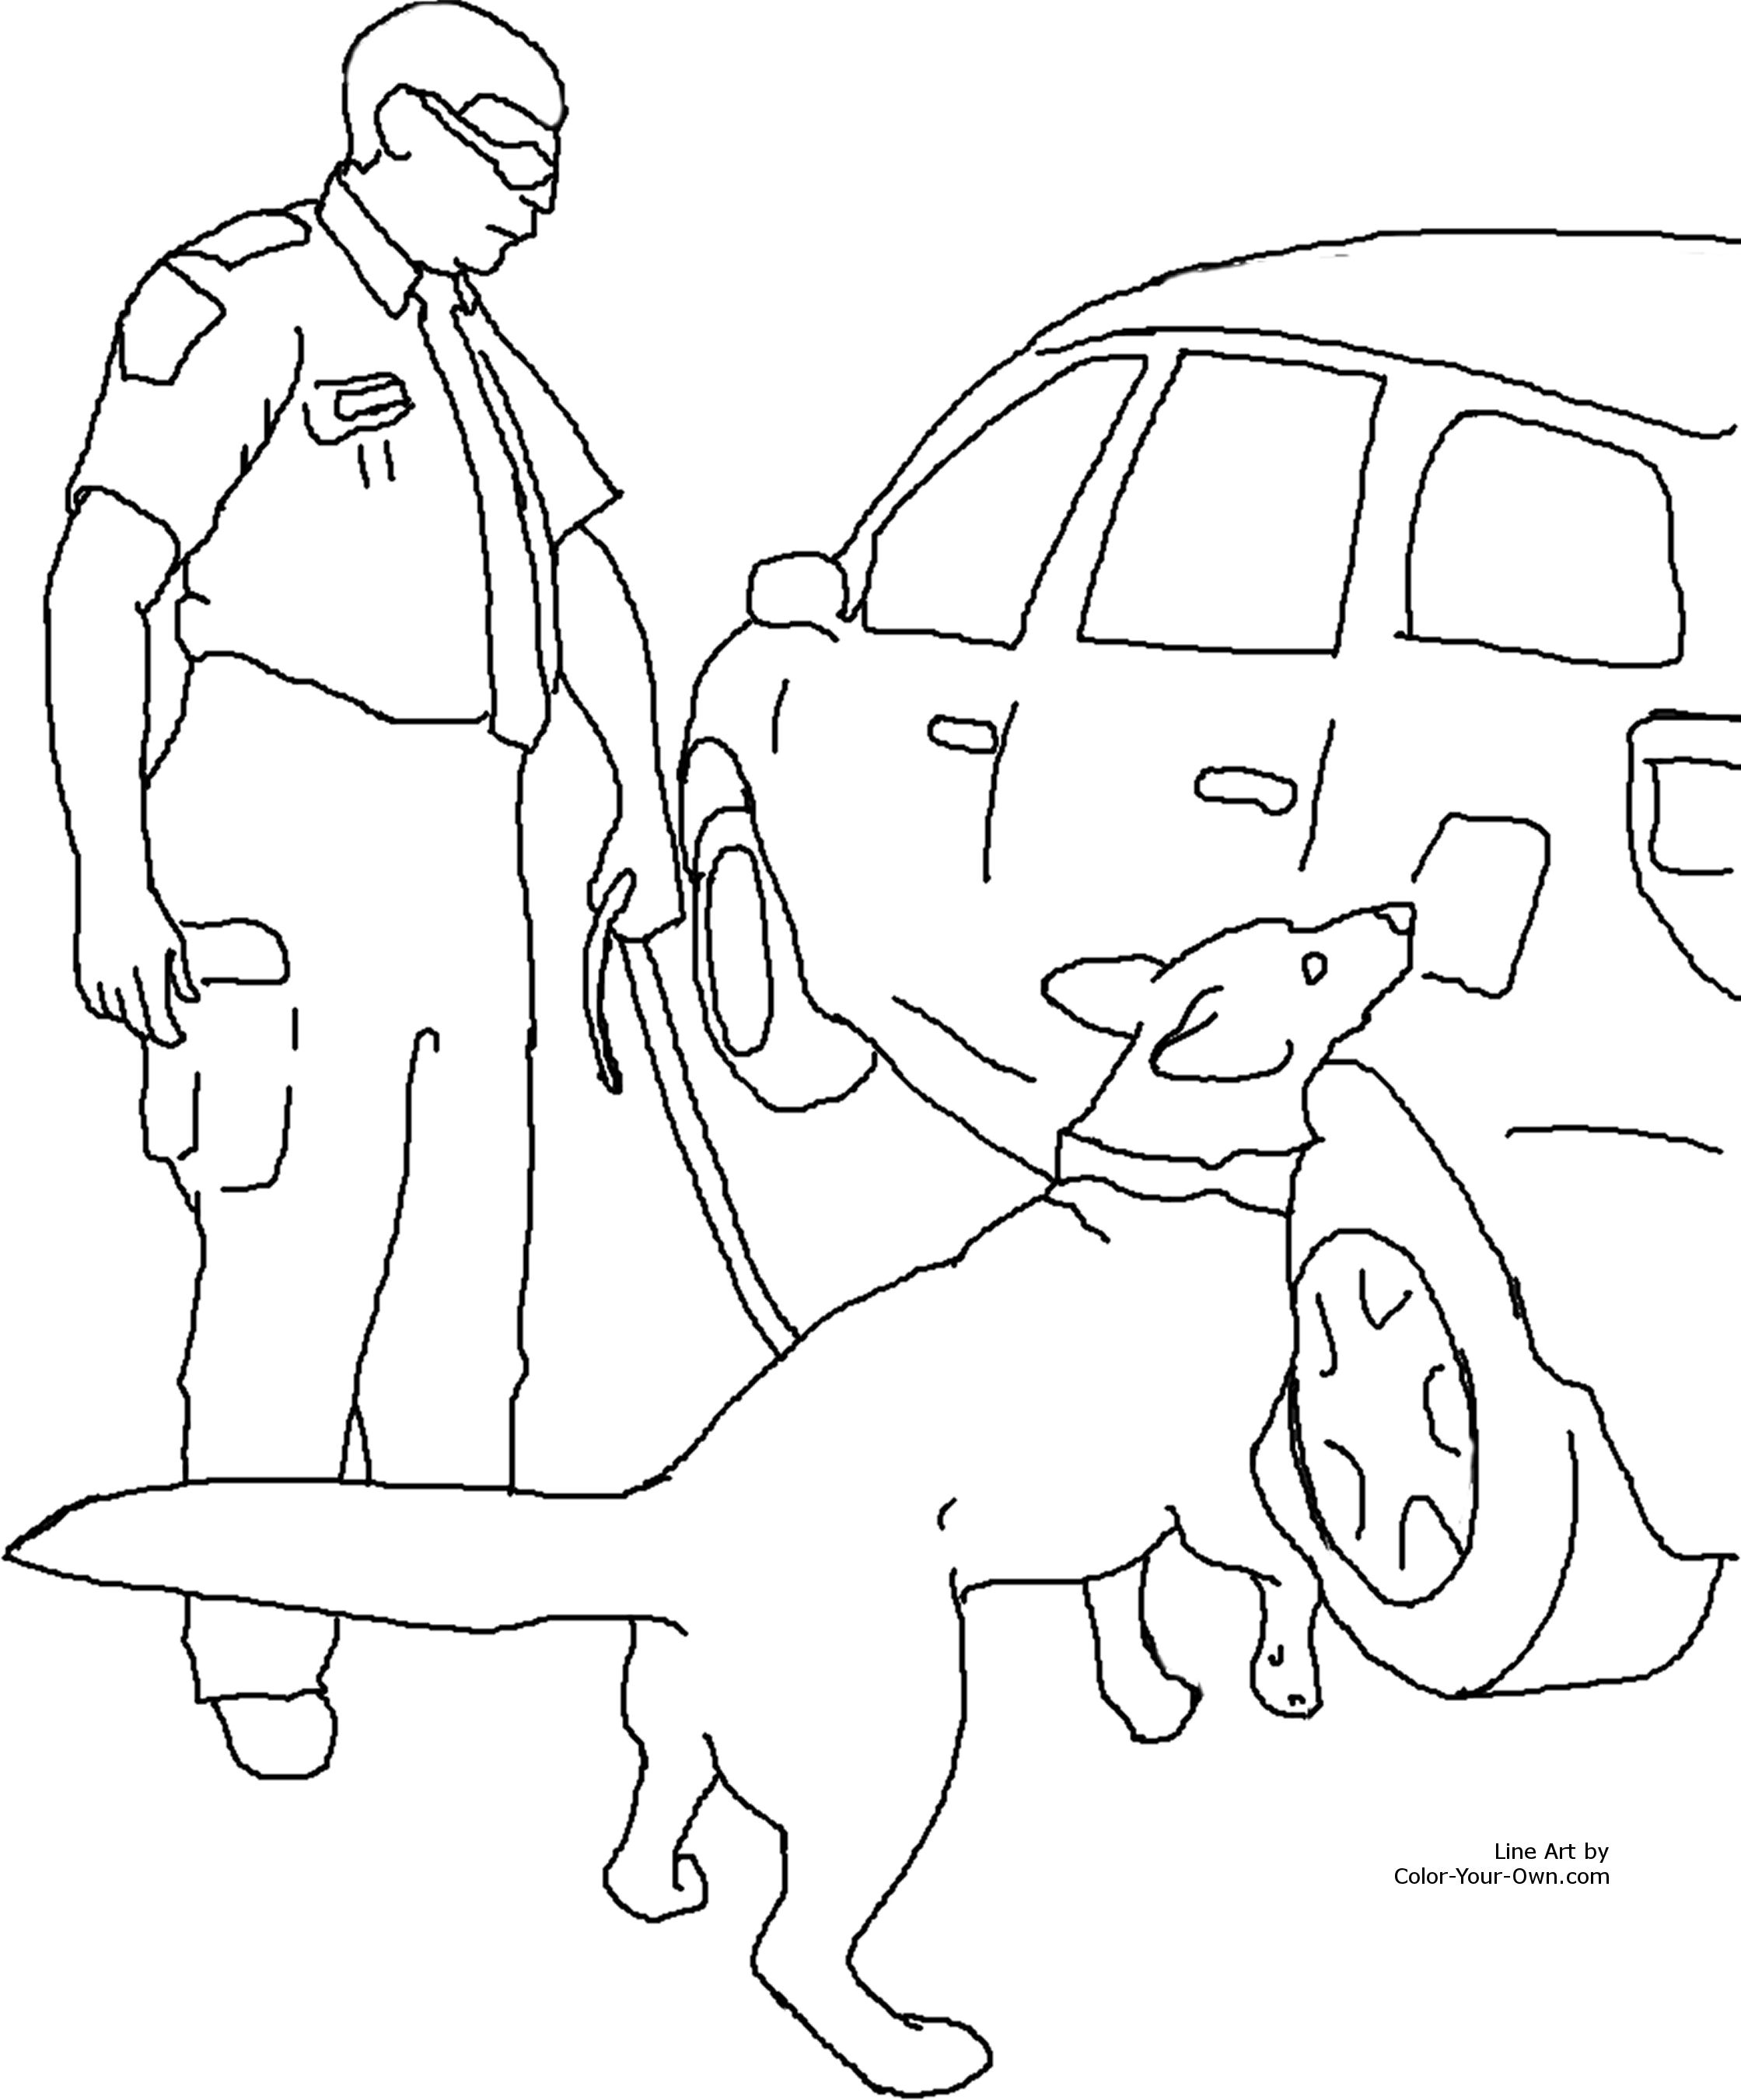 cocaine toucher coloring pages - photo#39